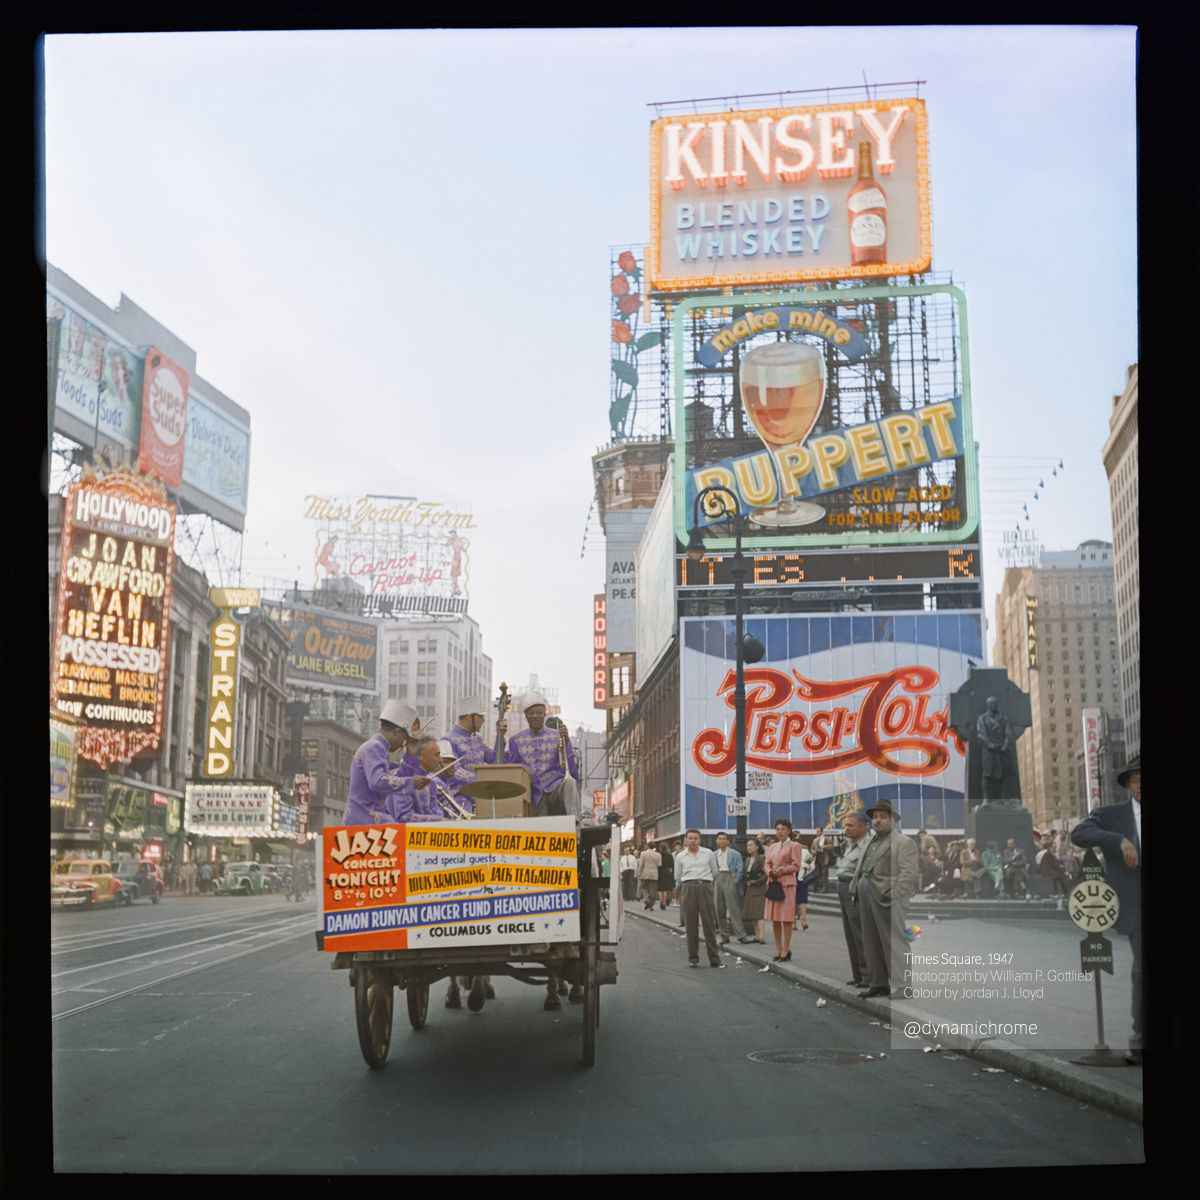 1947 - Time Square (New York)